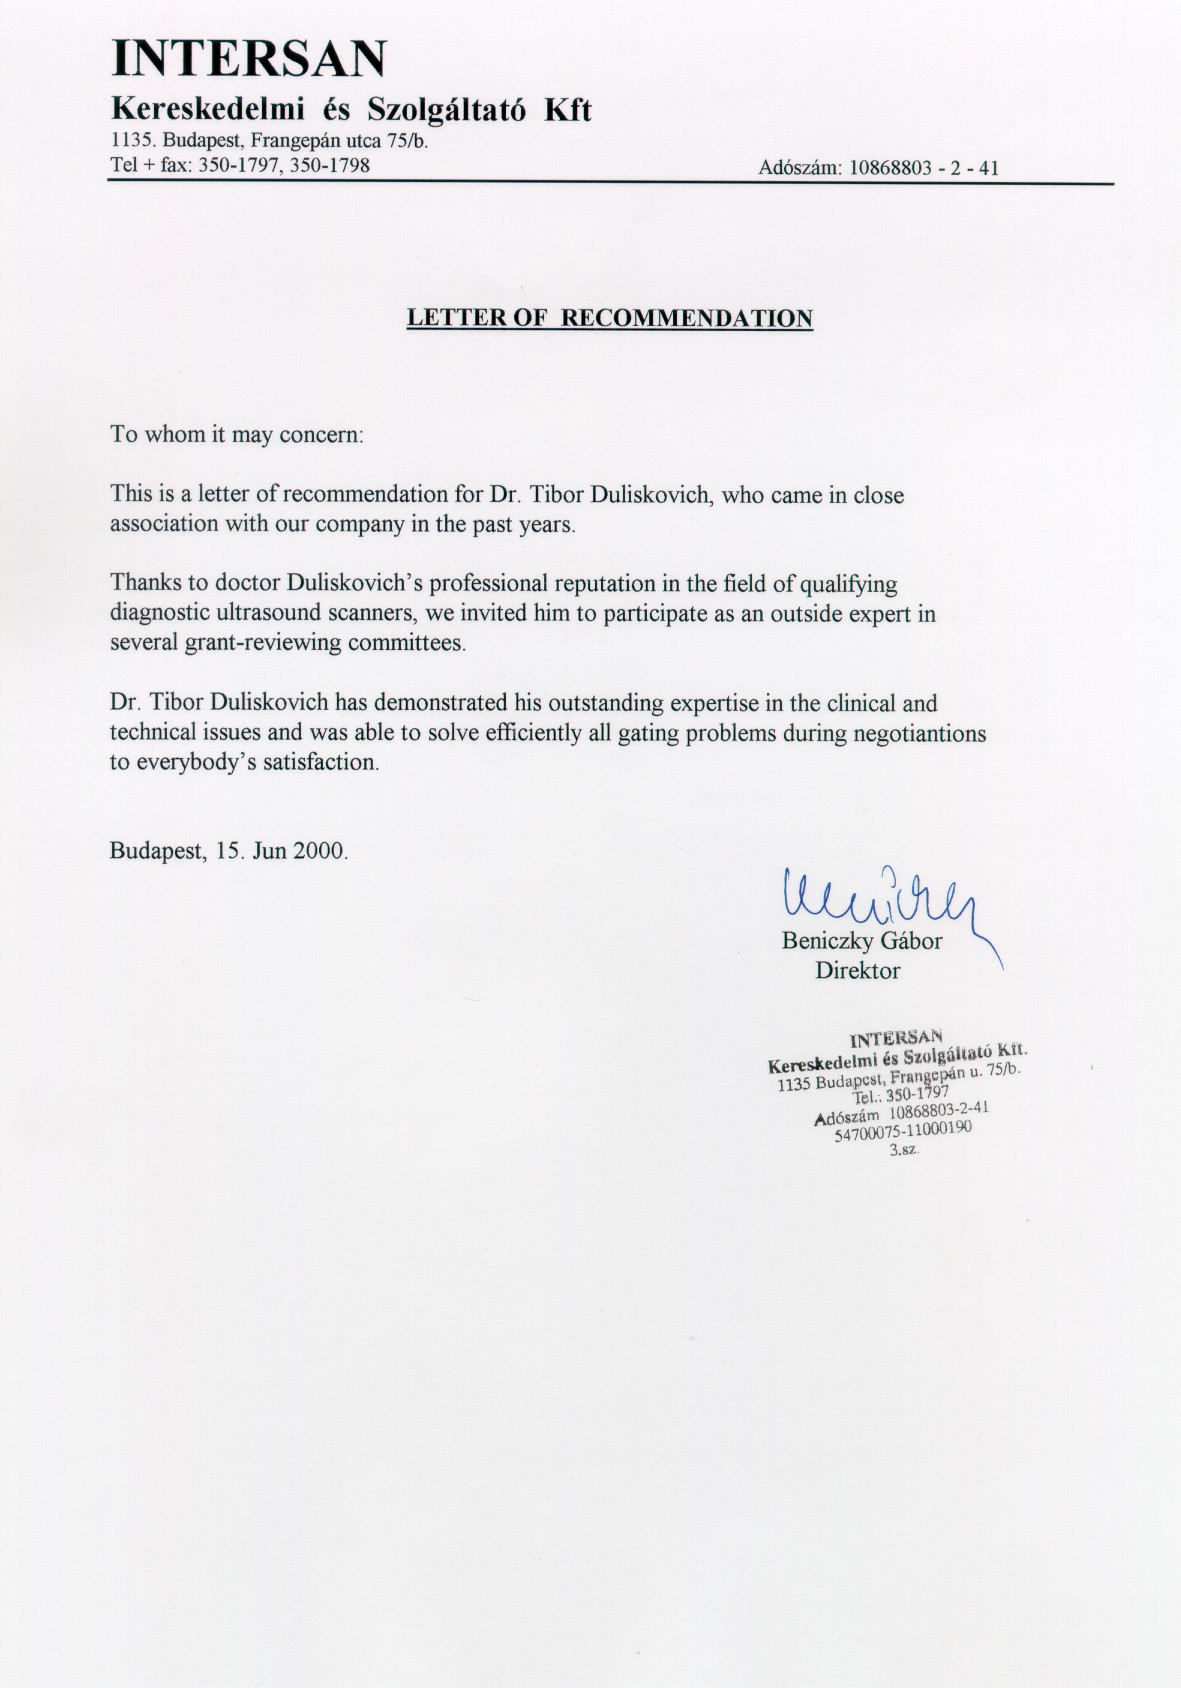 Sample Letter Of Recommendation For Physician Reference Letter